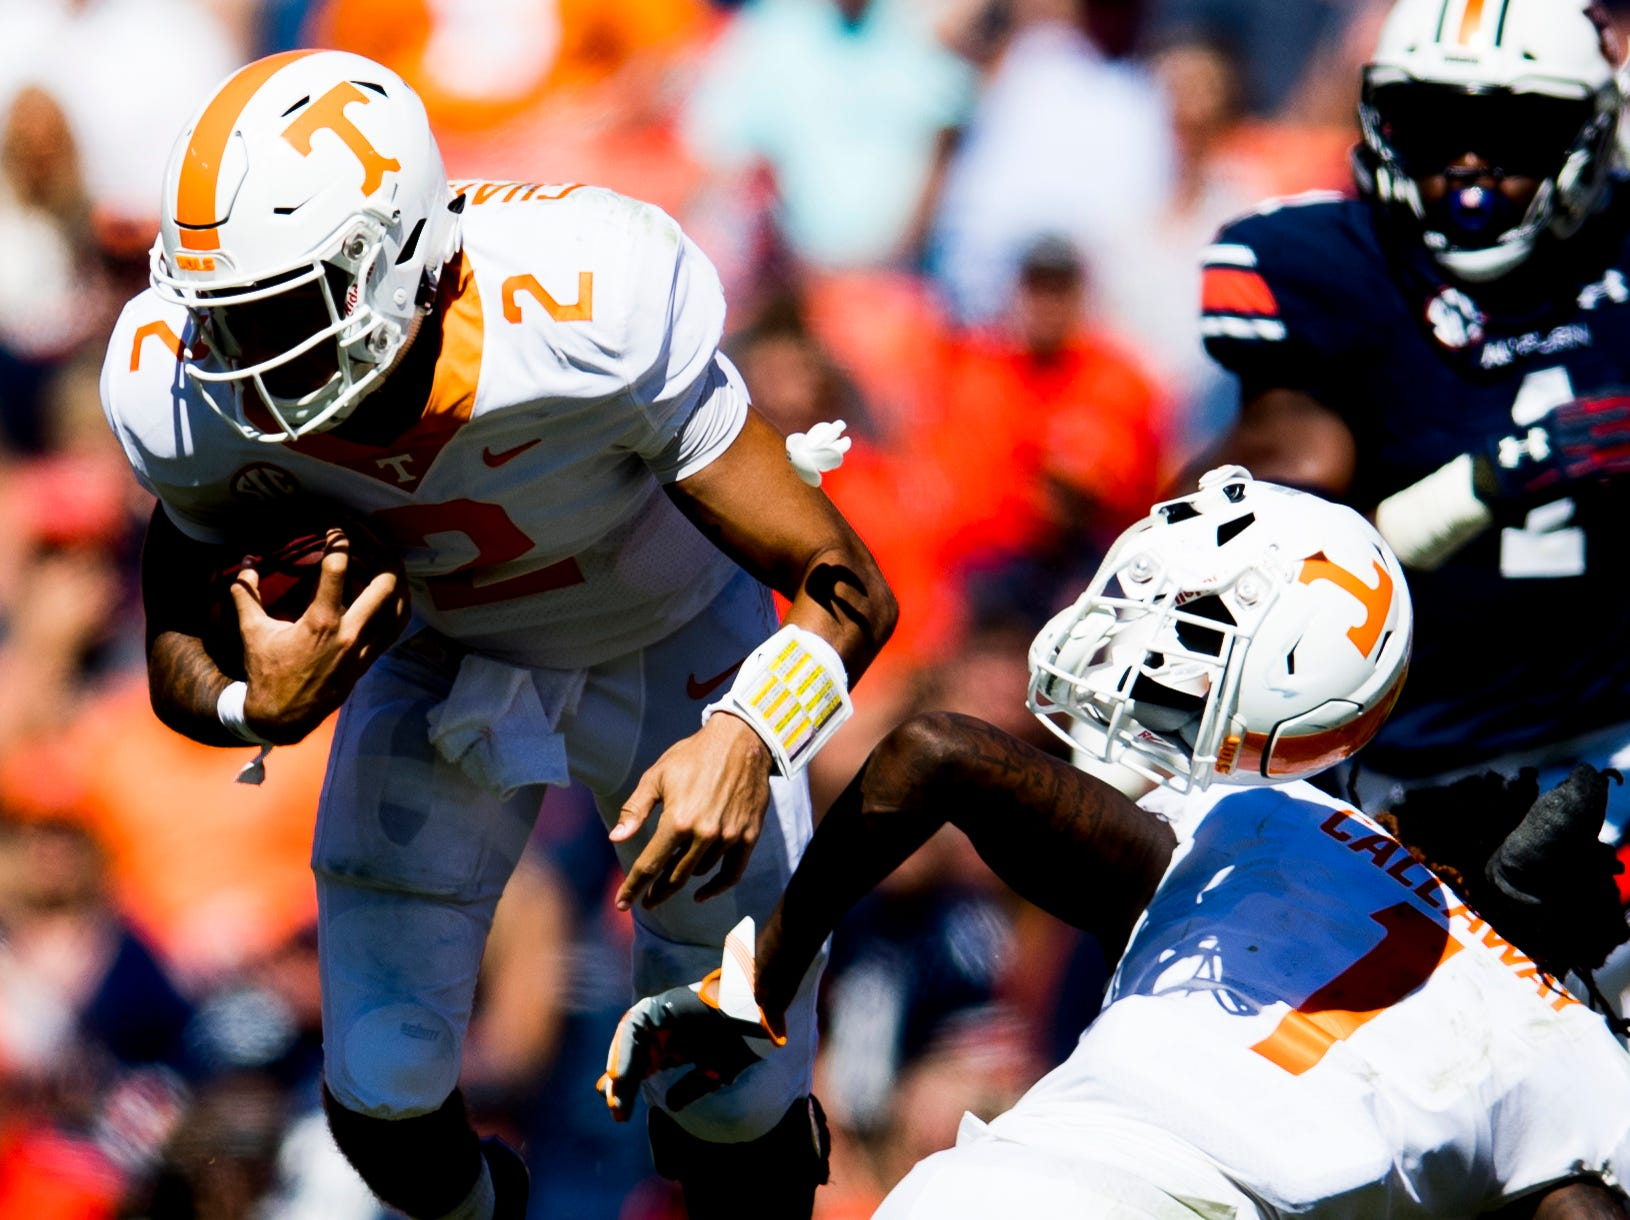 Tennessee wide receiver Marquez Callaway (1) loses his helmet as Tennessee quarterback Jarrett Guarantano (2) runs around him during a game between Tennessee and Auburn at Jordan-Hare Stadium in Auburn, Alabama on Saturday, October 13, 2018.